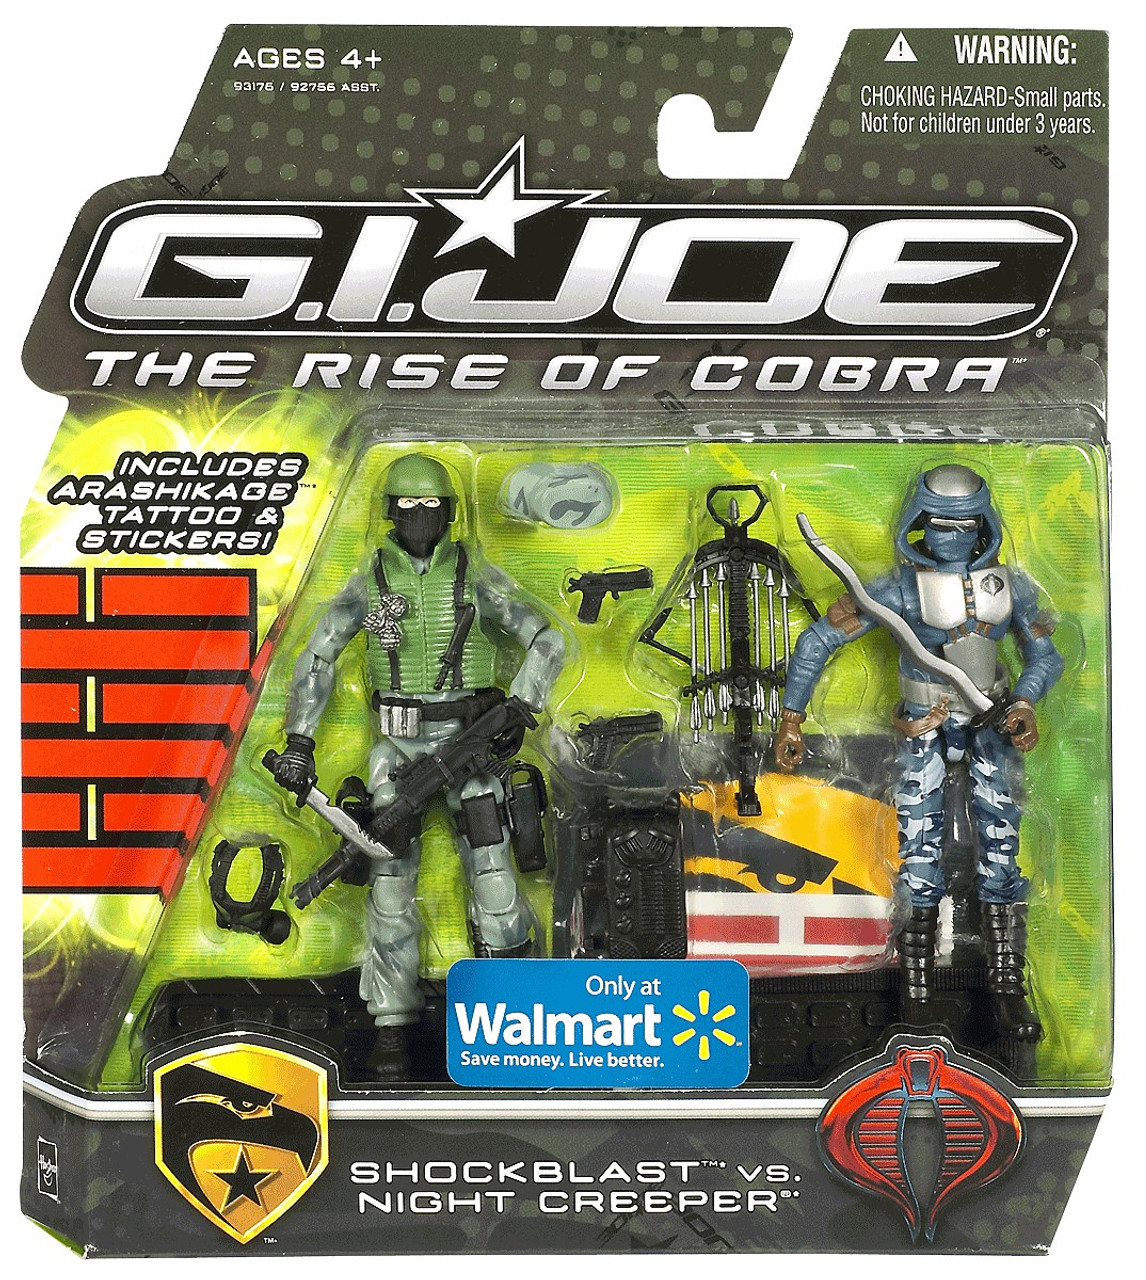 GI Joe The Rise of Cobra Shockblast vs. Night Creeper Exclusive Action Figure 2-Pack